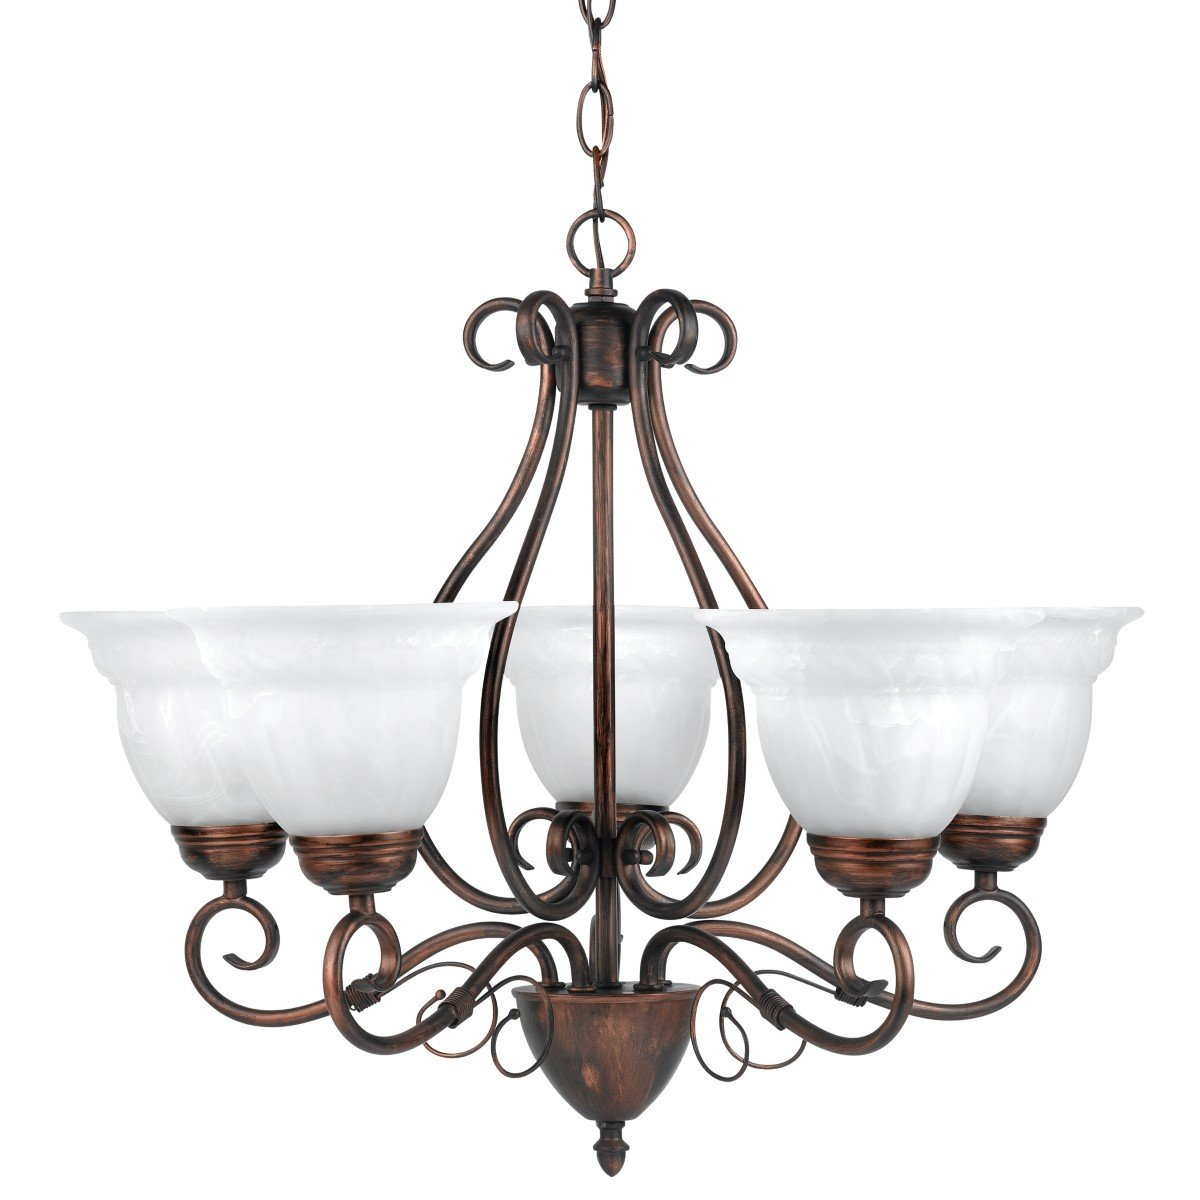 Globe Electric 65573 Beatrice 5 Light Candelier, Large, 22.5'' x 22.5'' x 19.75'', Weathered Bronze by Globe Electric